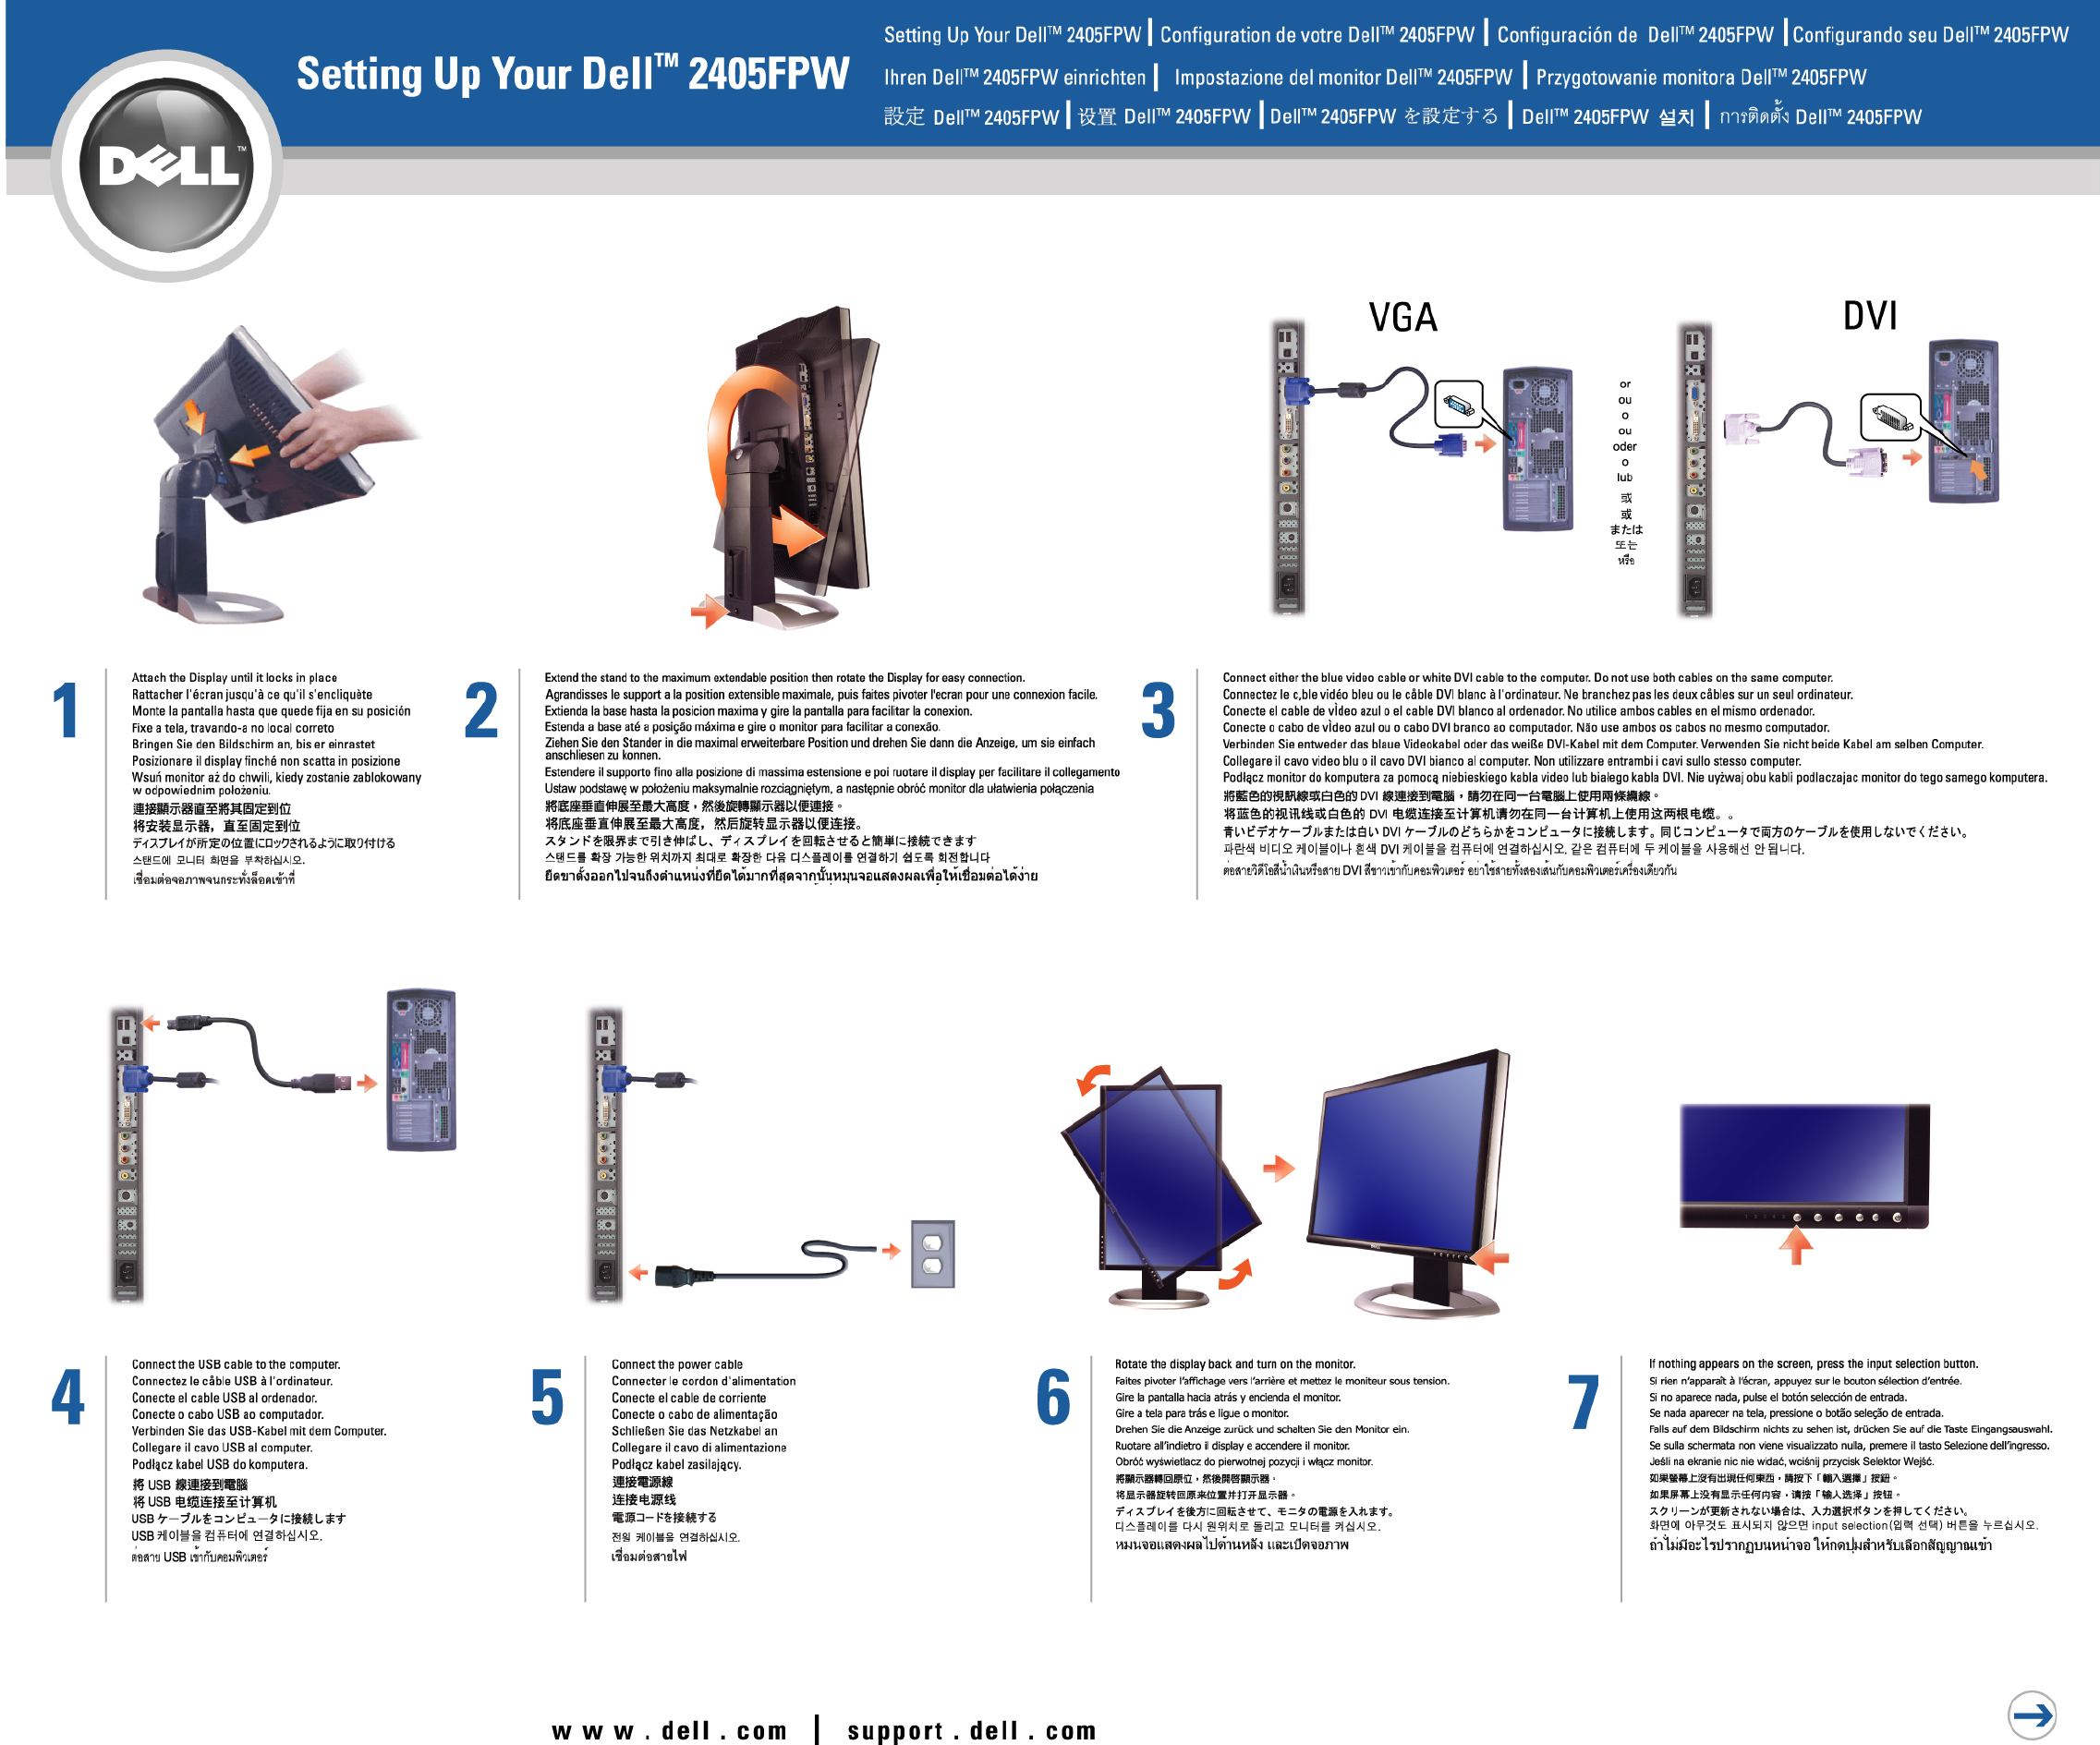 dell computer monitor 2405fpw user guide manualsonline com dell laptop troubleshooting guide dell laptop user manual